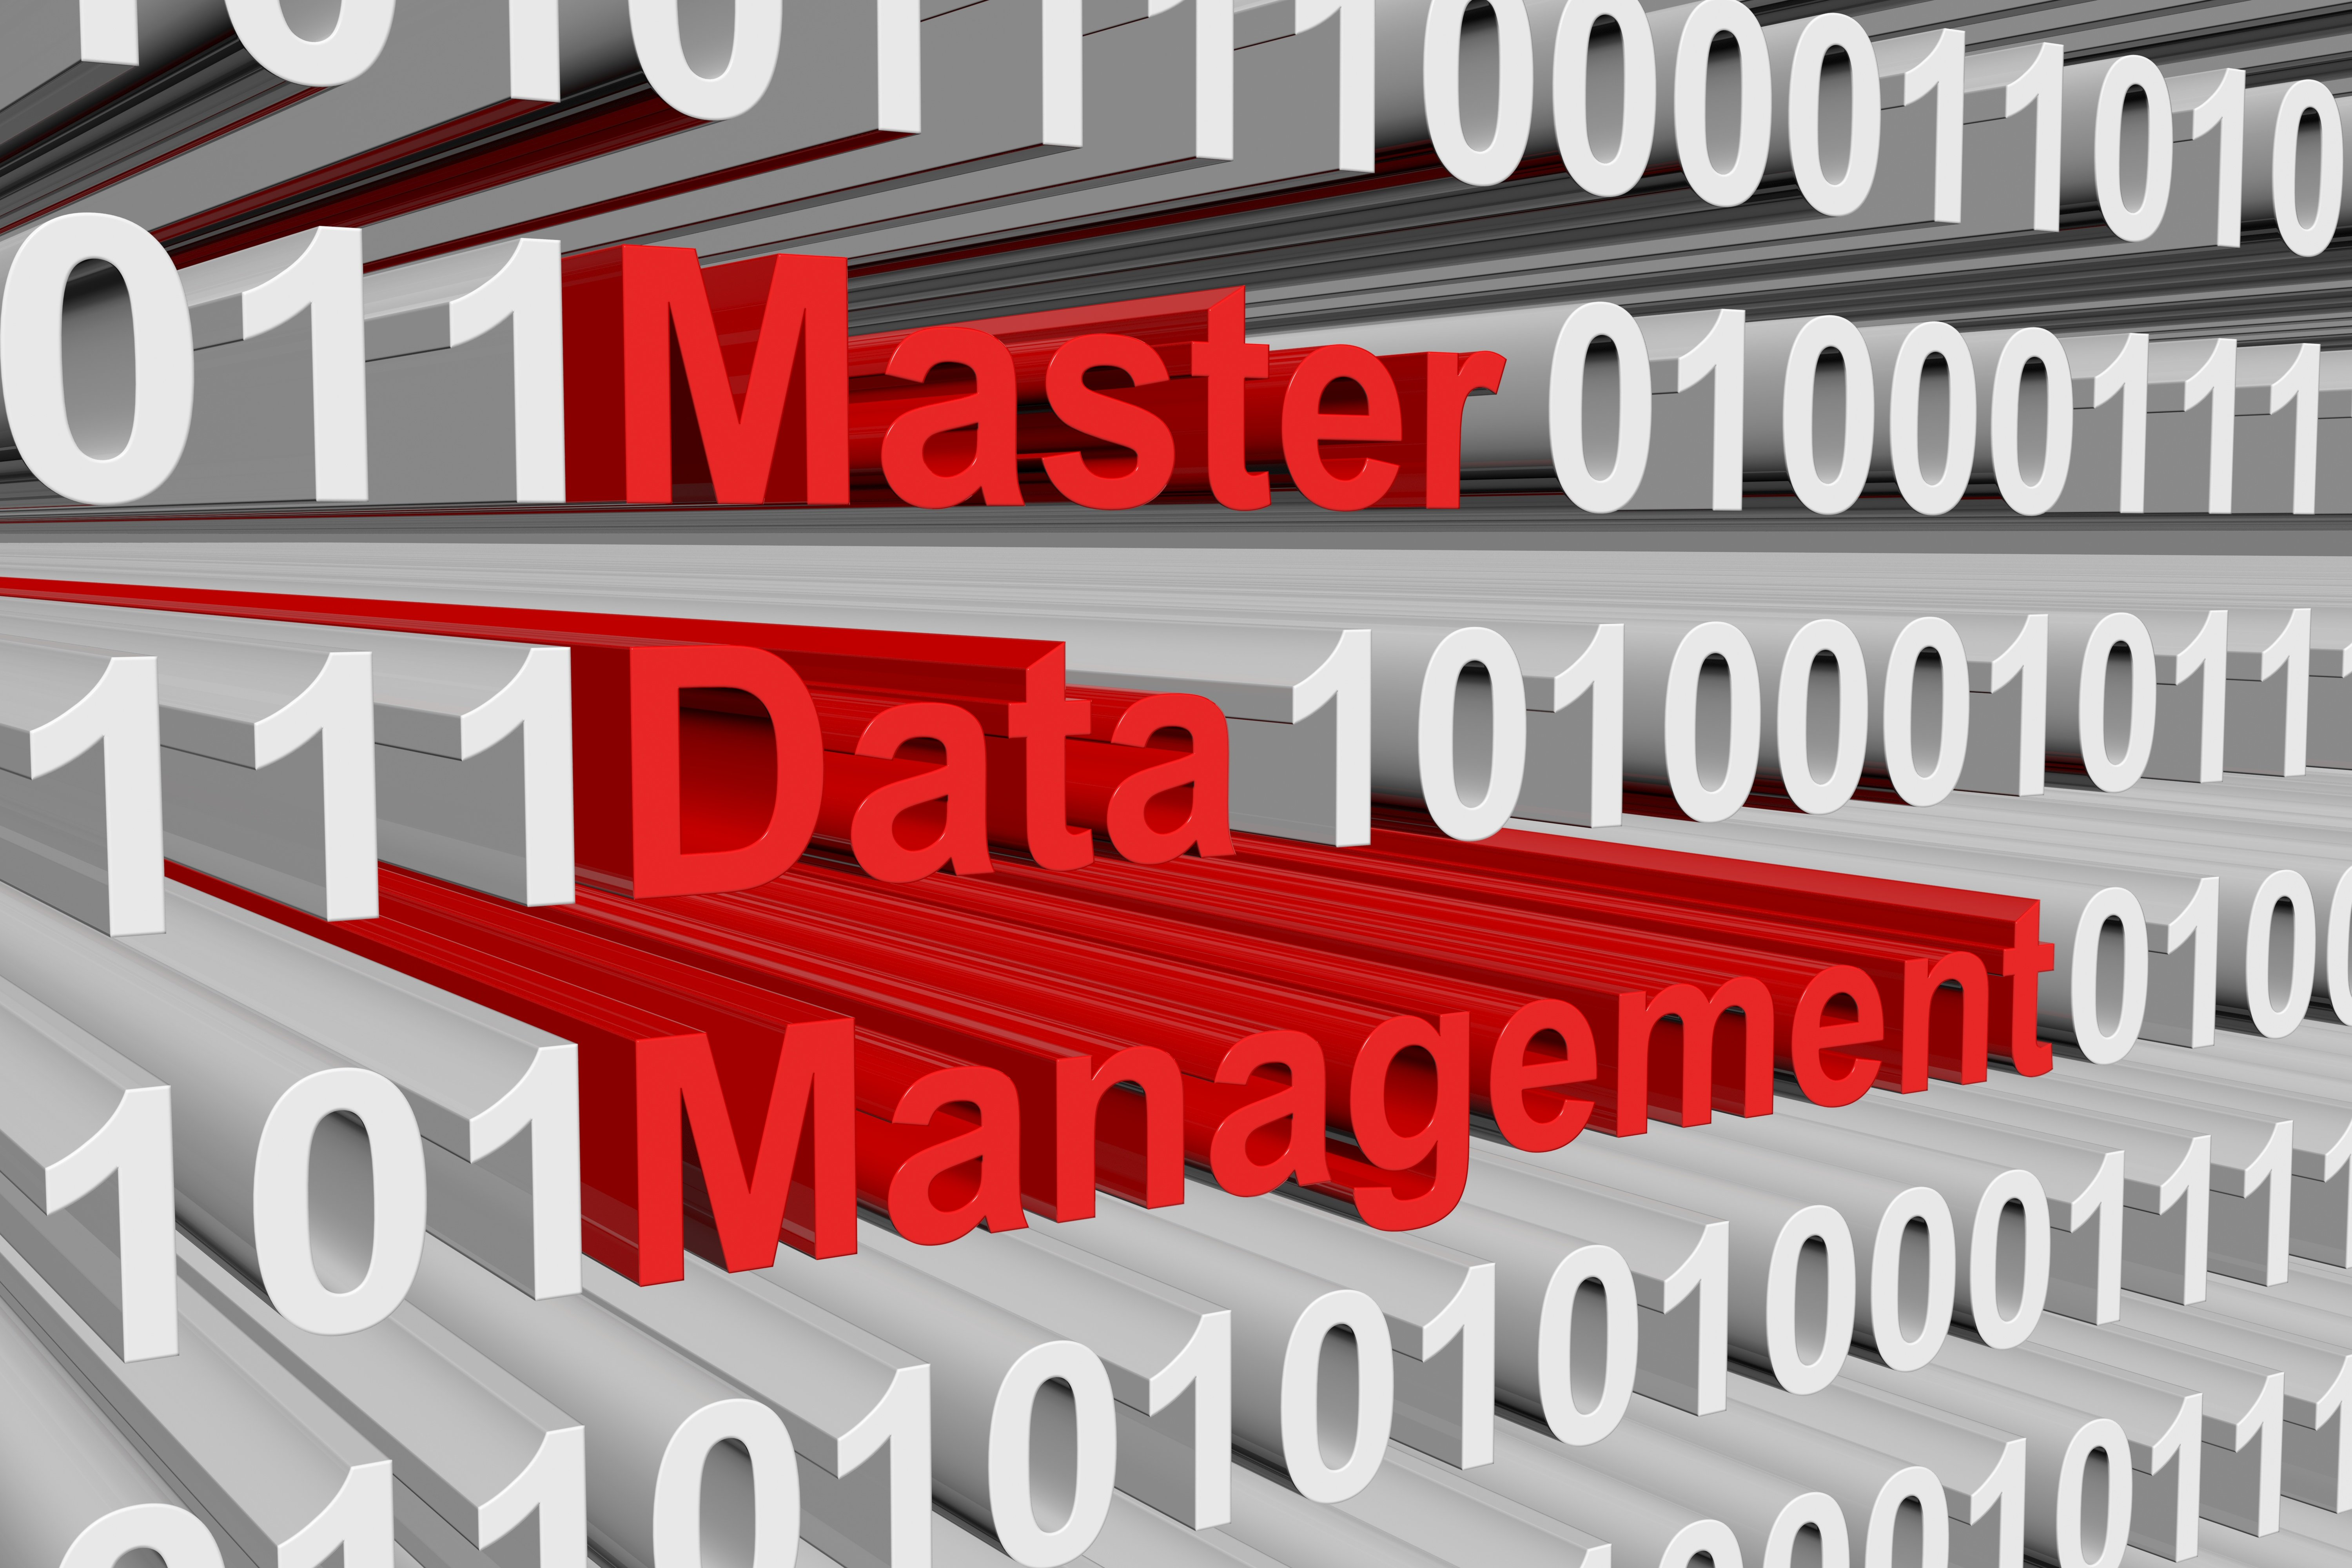 Mastering Data Requires Attention to Detail